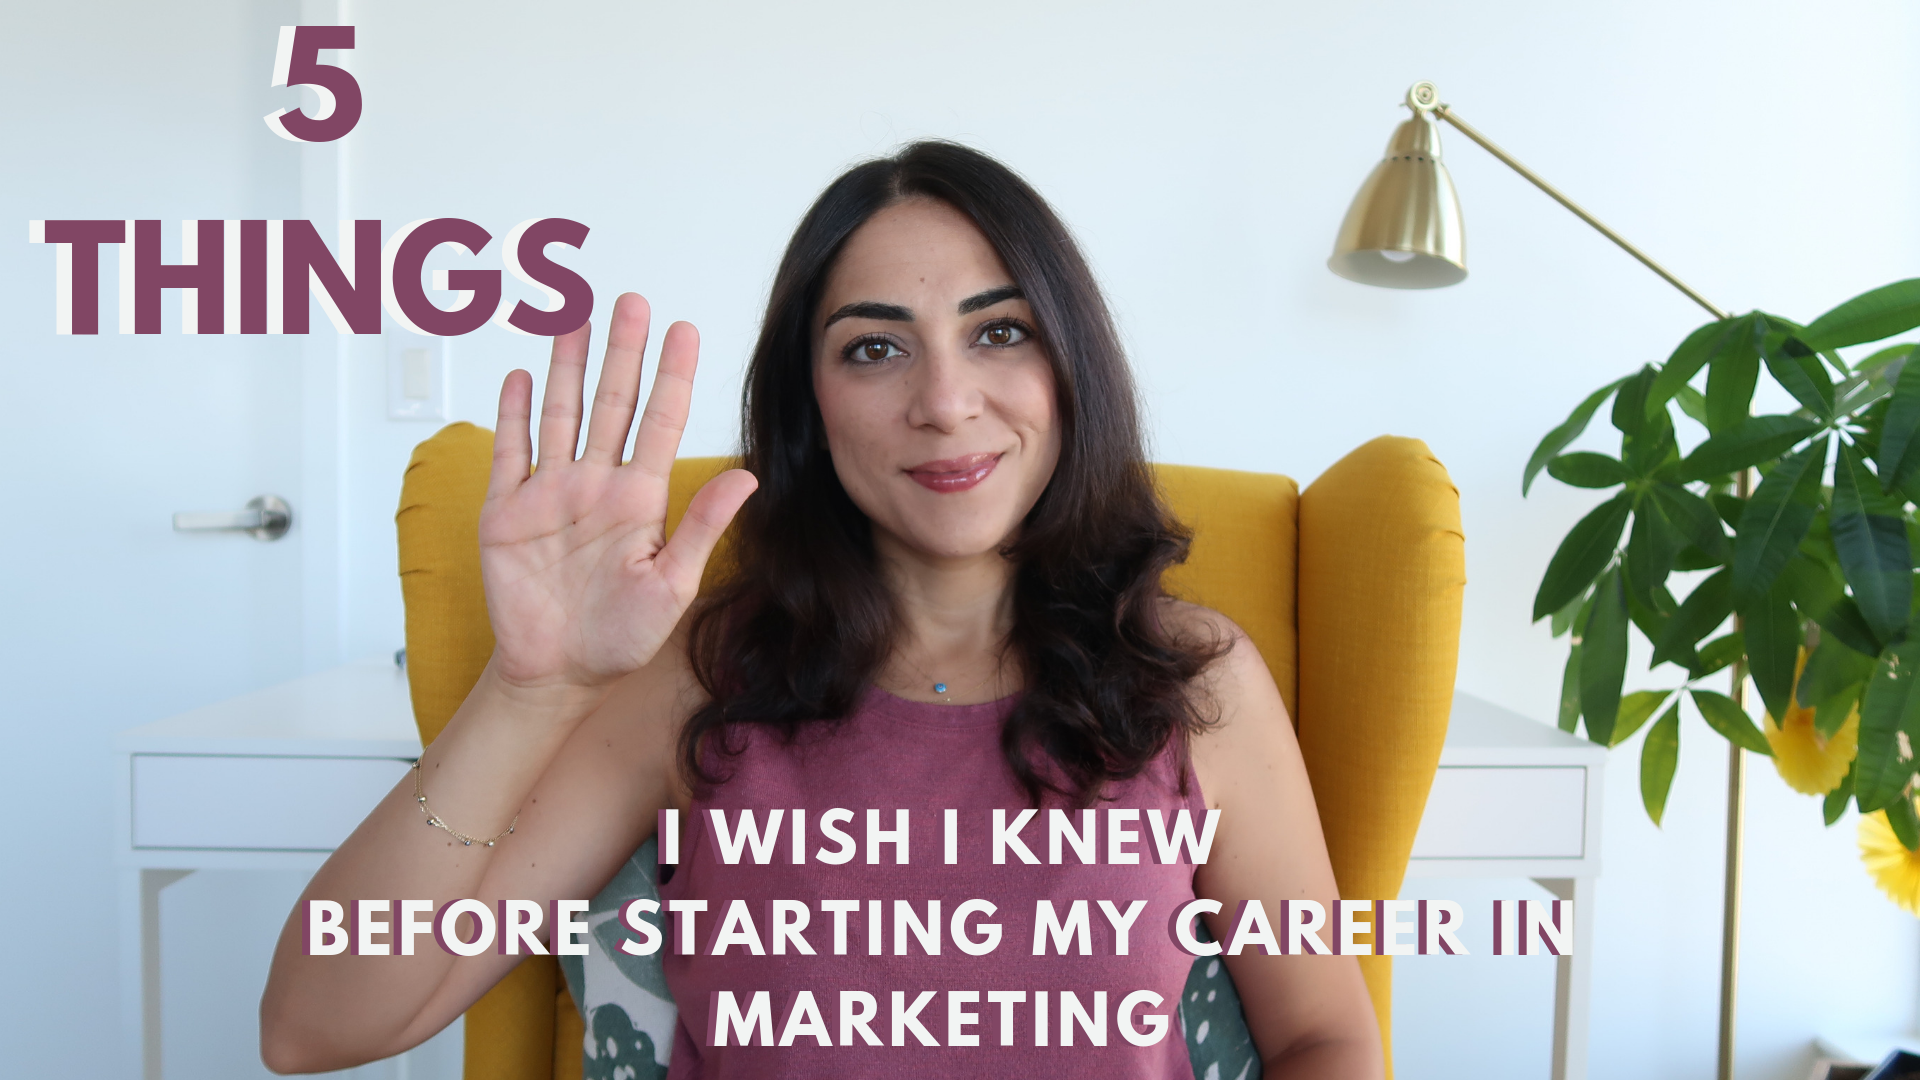 Career-In-Marketing-5-Things-I-Wish-I-Knew-Before-I-Started-Out